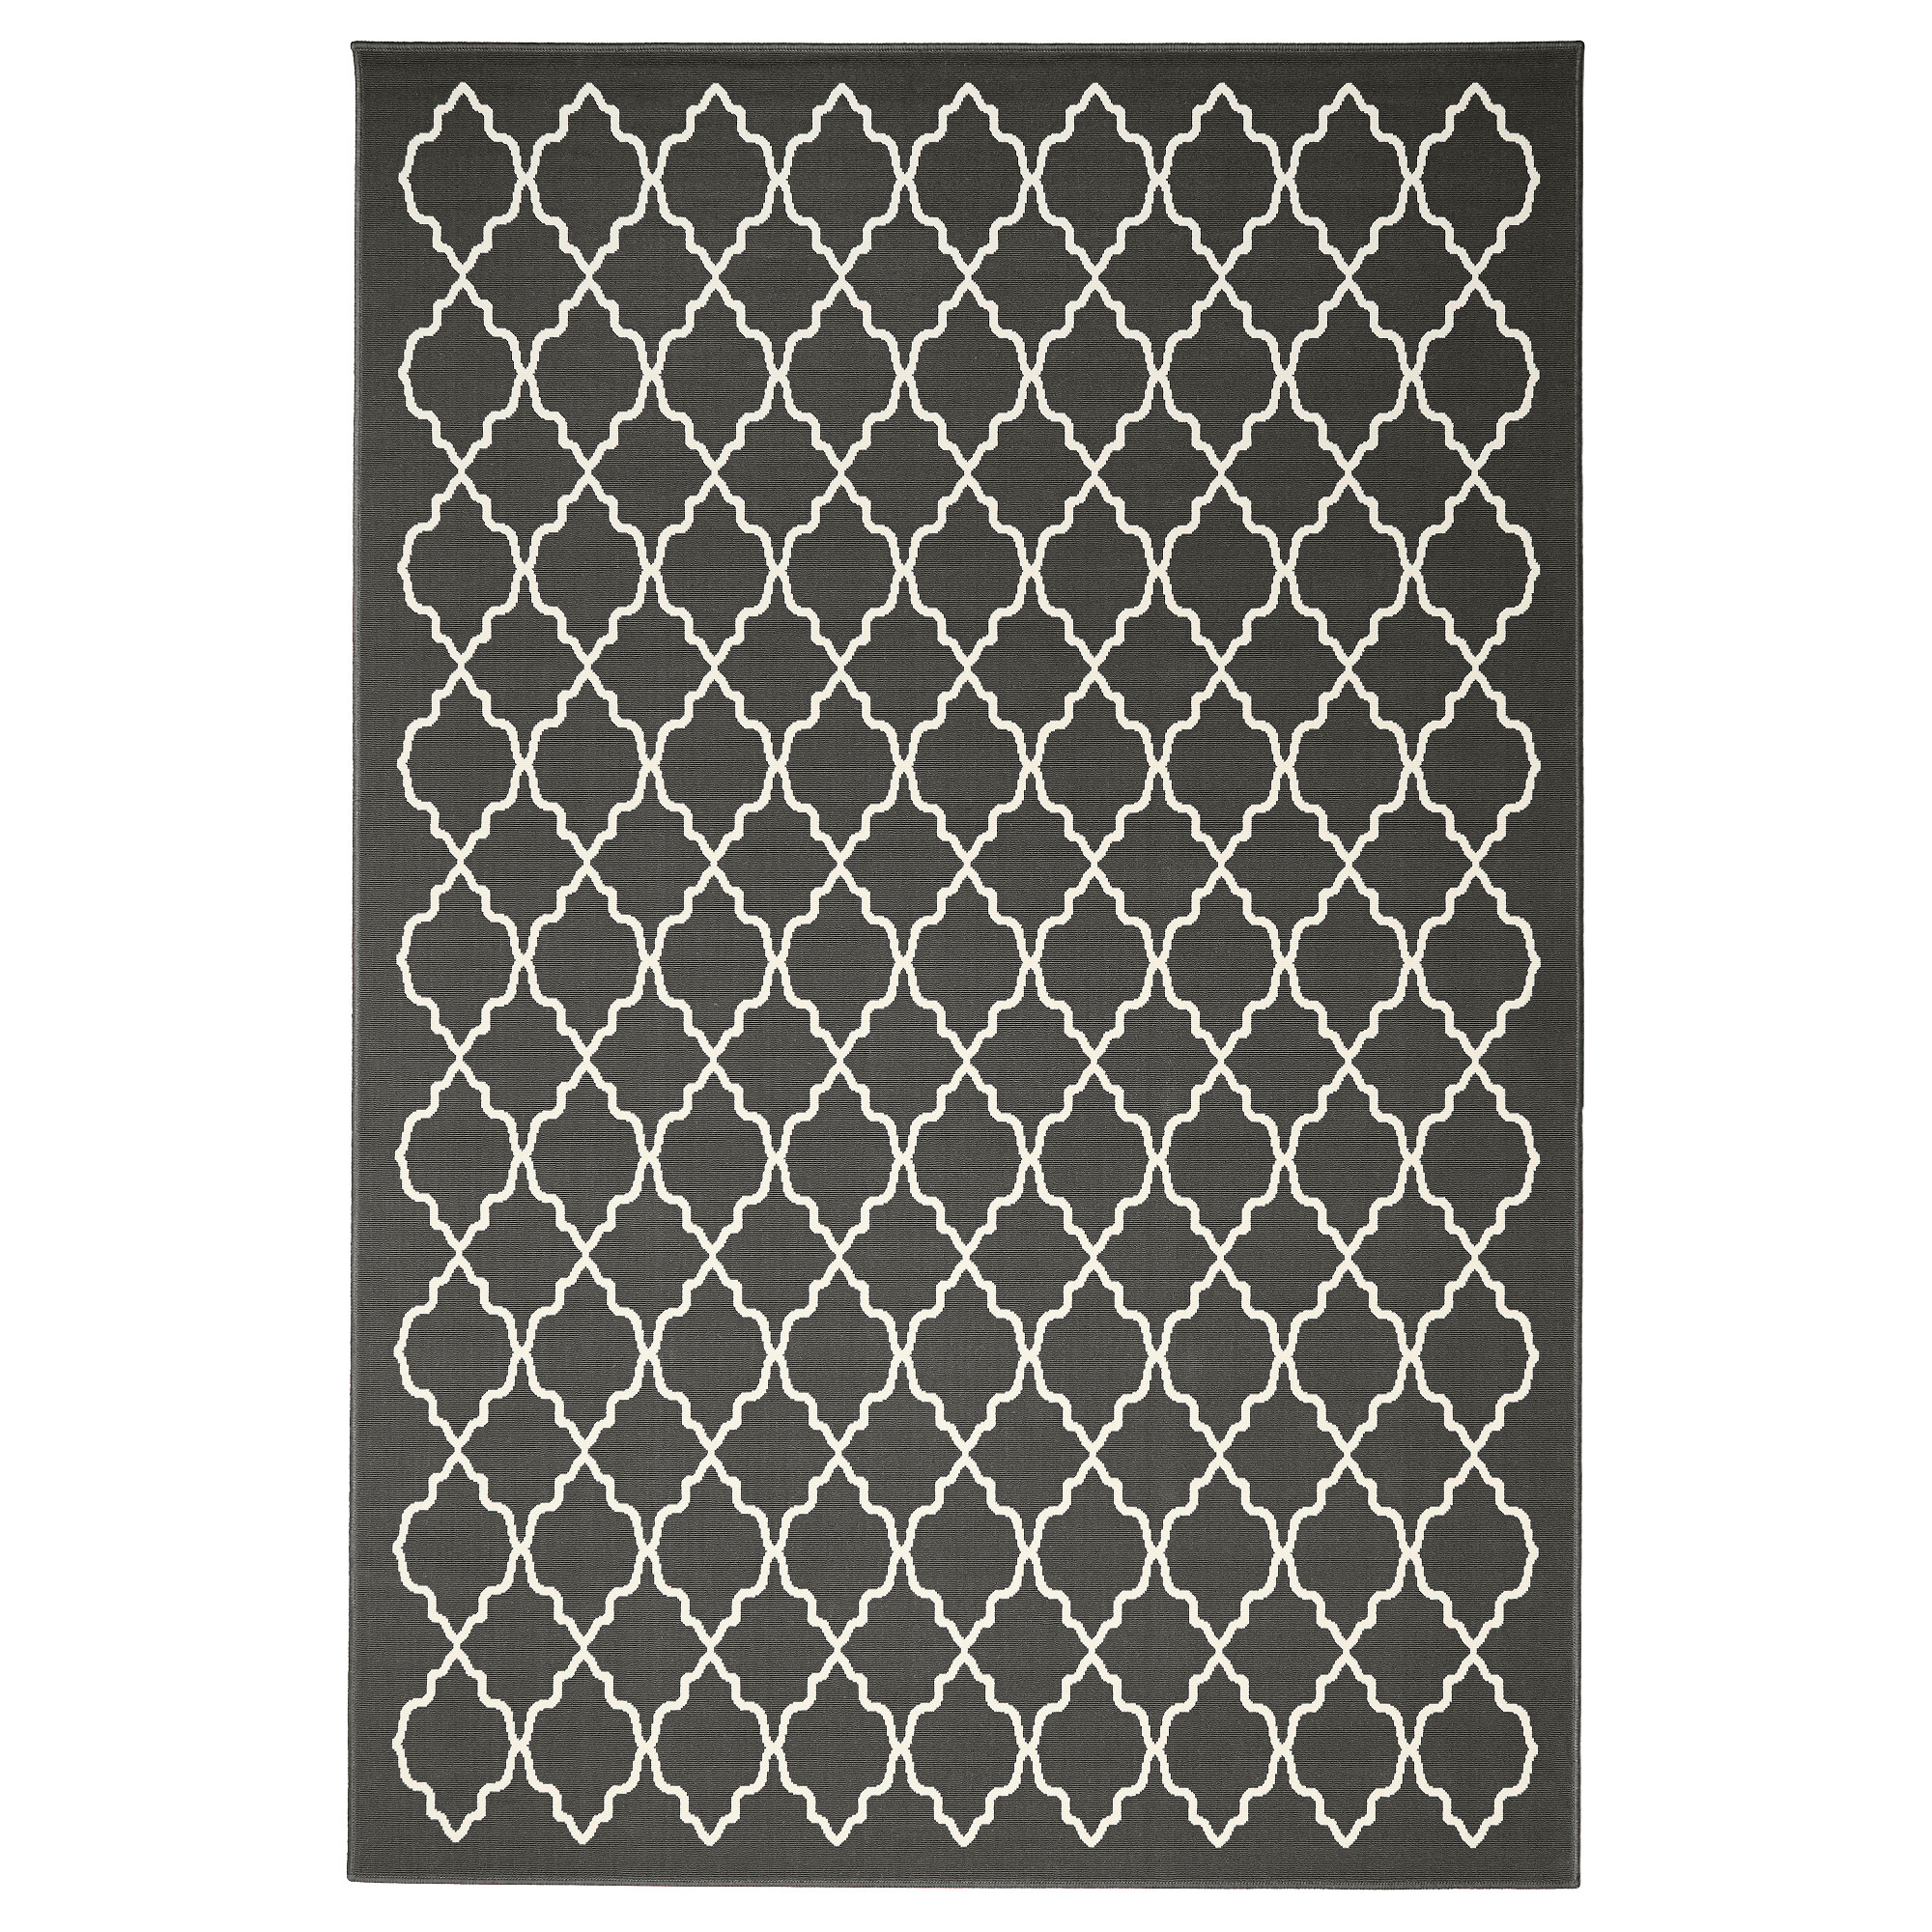 Carrelage Design tapis shaggy ikea : Black And White Rug Ikea : www.galleryhip.com - The Hippest Pics